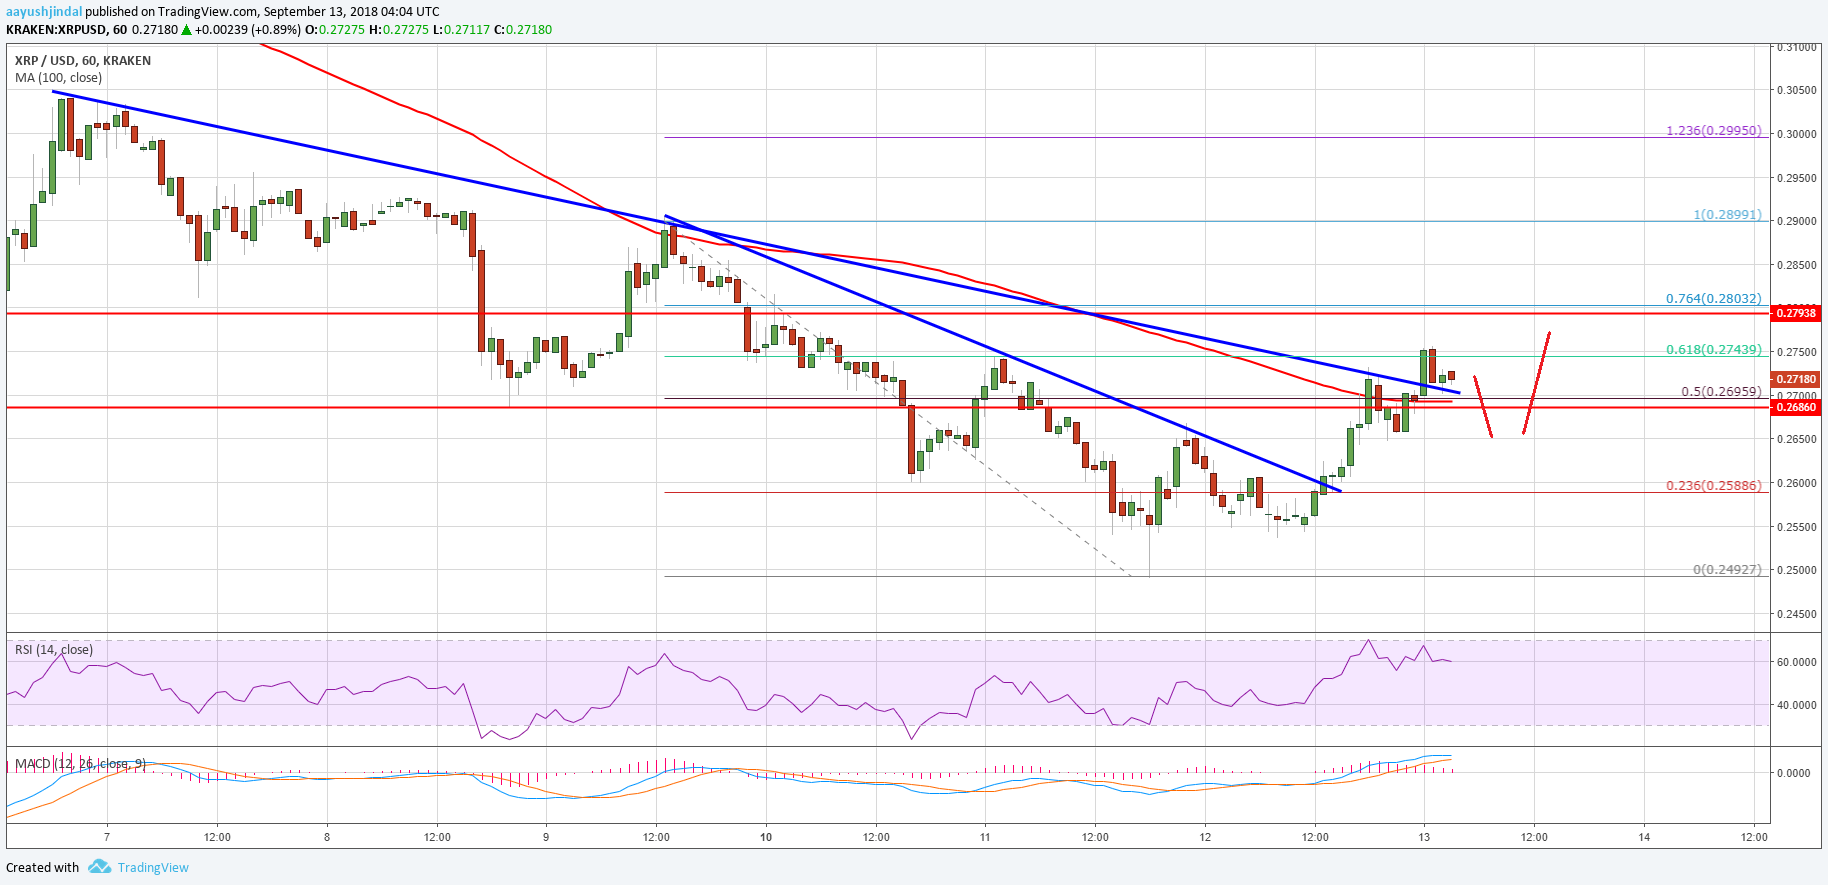 Ripple Price Analysis: XRP/USD Upsides Could be Capped Near $0.2900 2